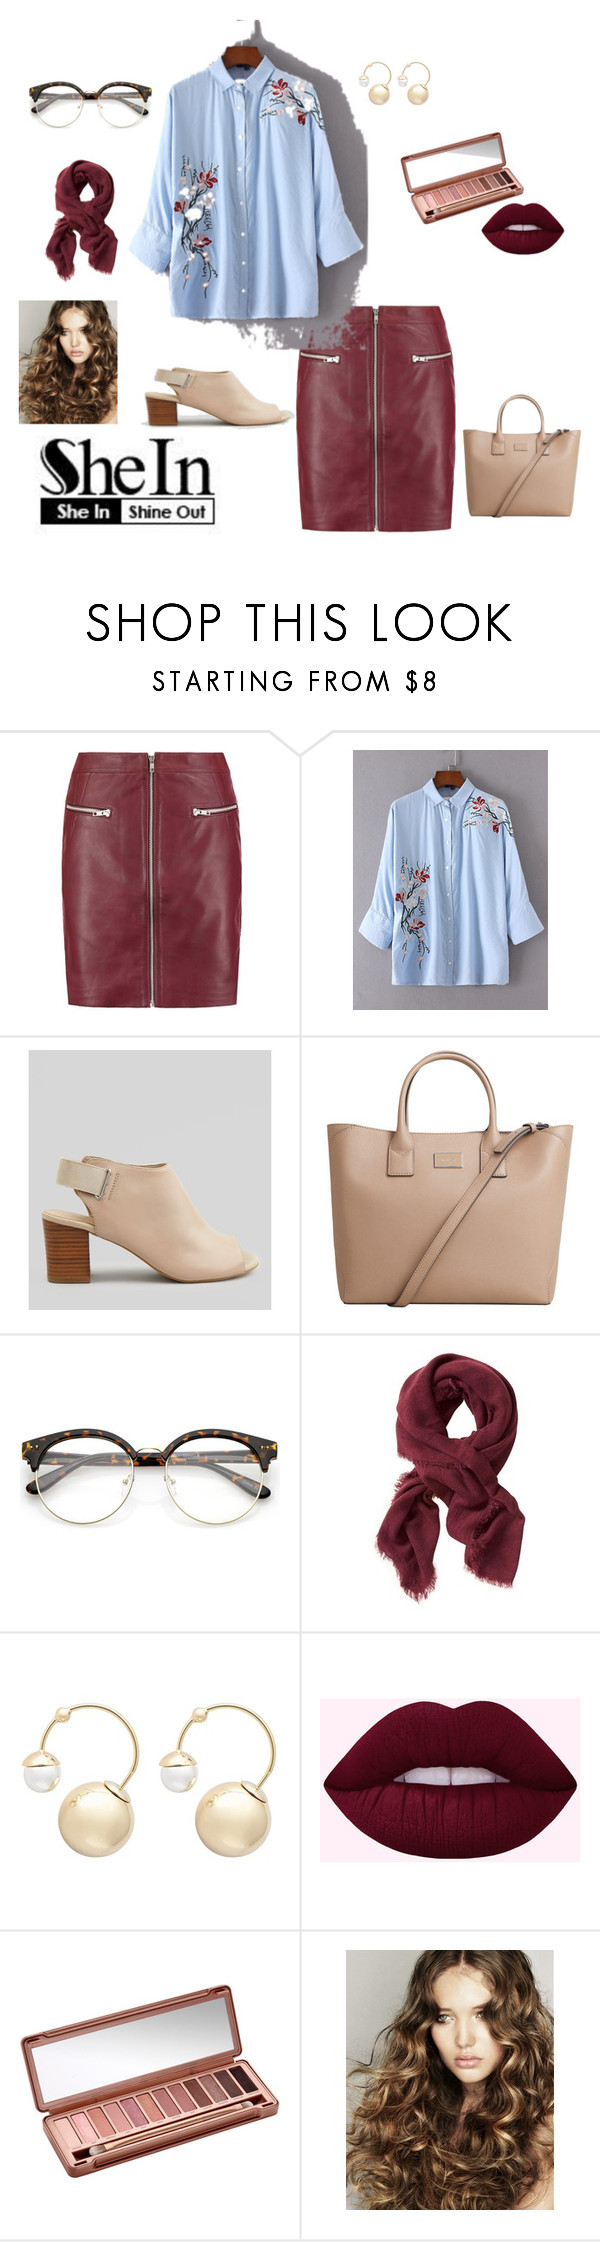 """""""day out"""" by jbillington ❤ liked on Polyvore featuring New Look, MANGO, Banana Republic, Witchery, Urban Decay, floral and floralprint"""